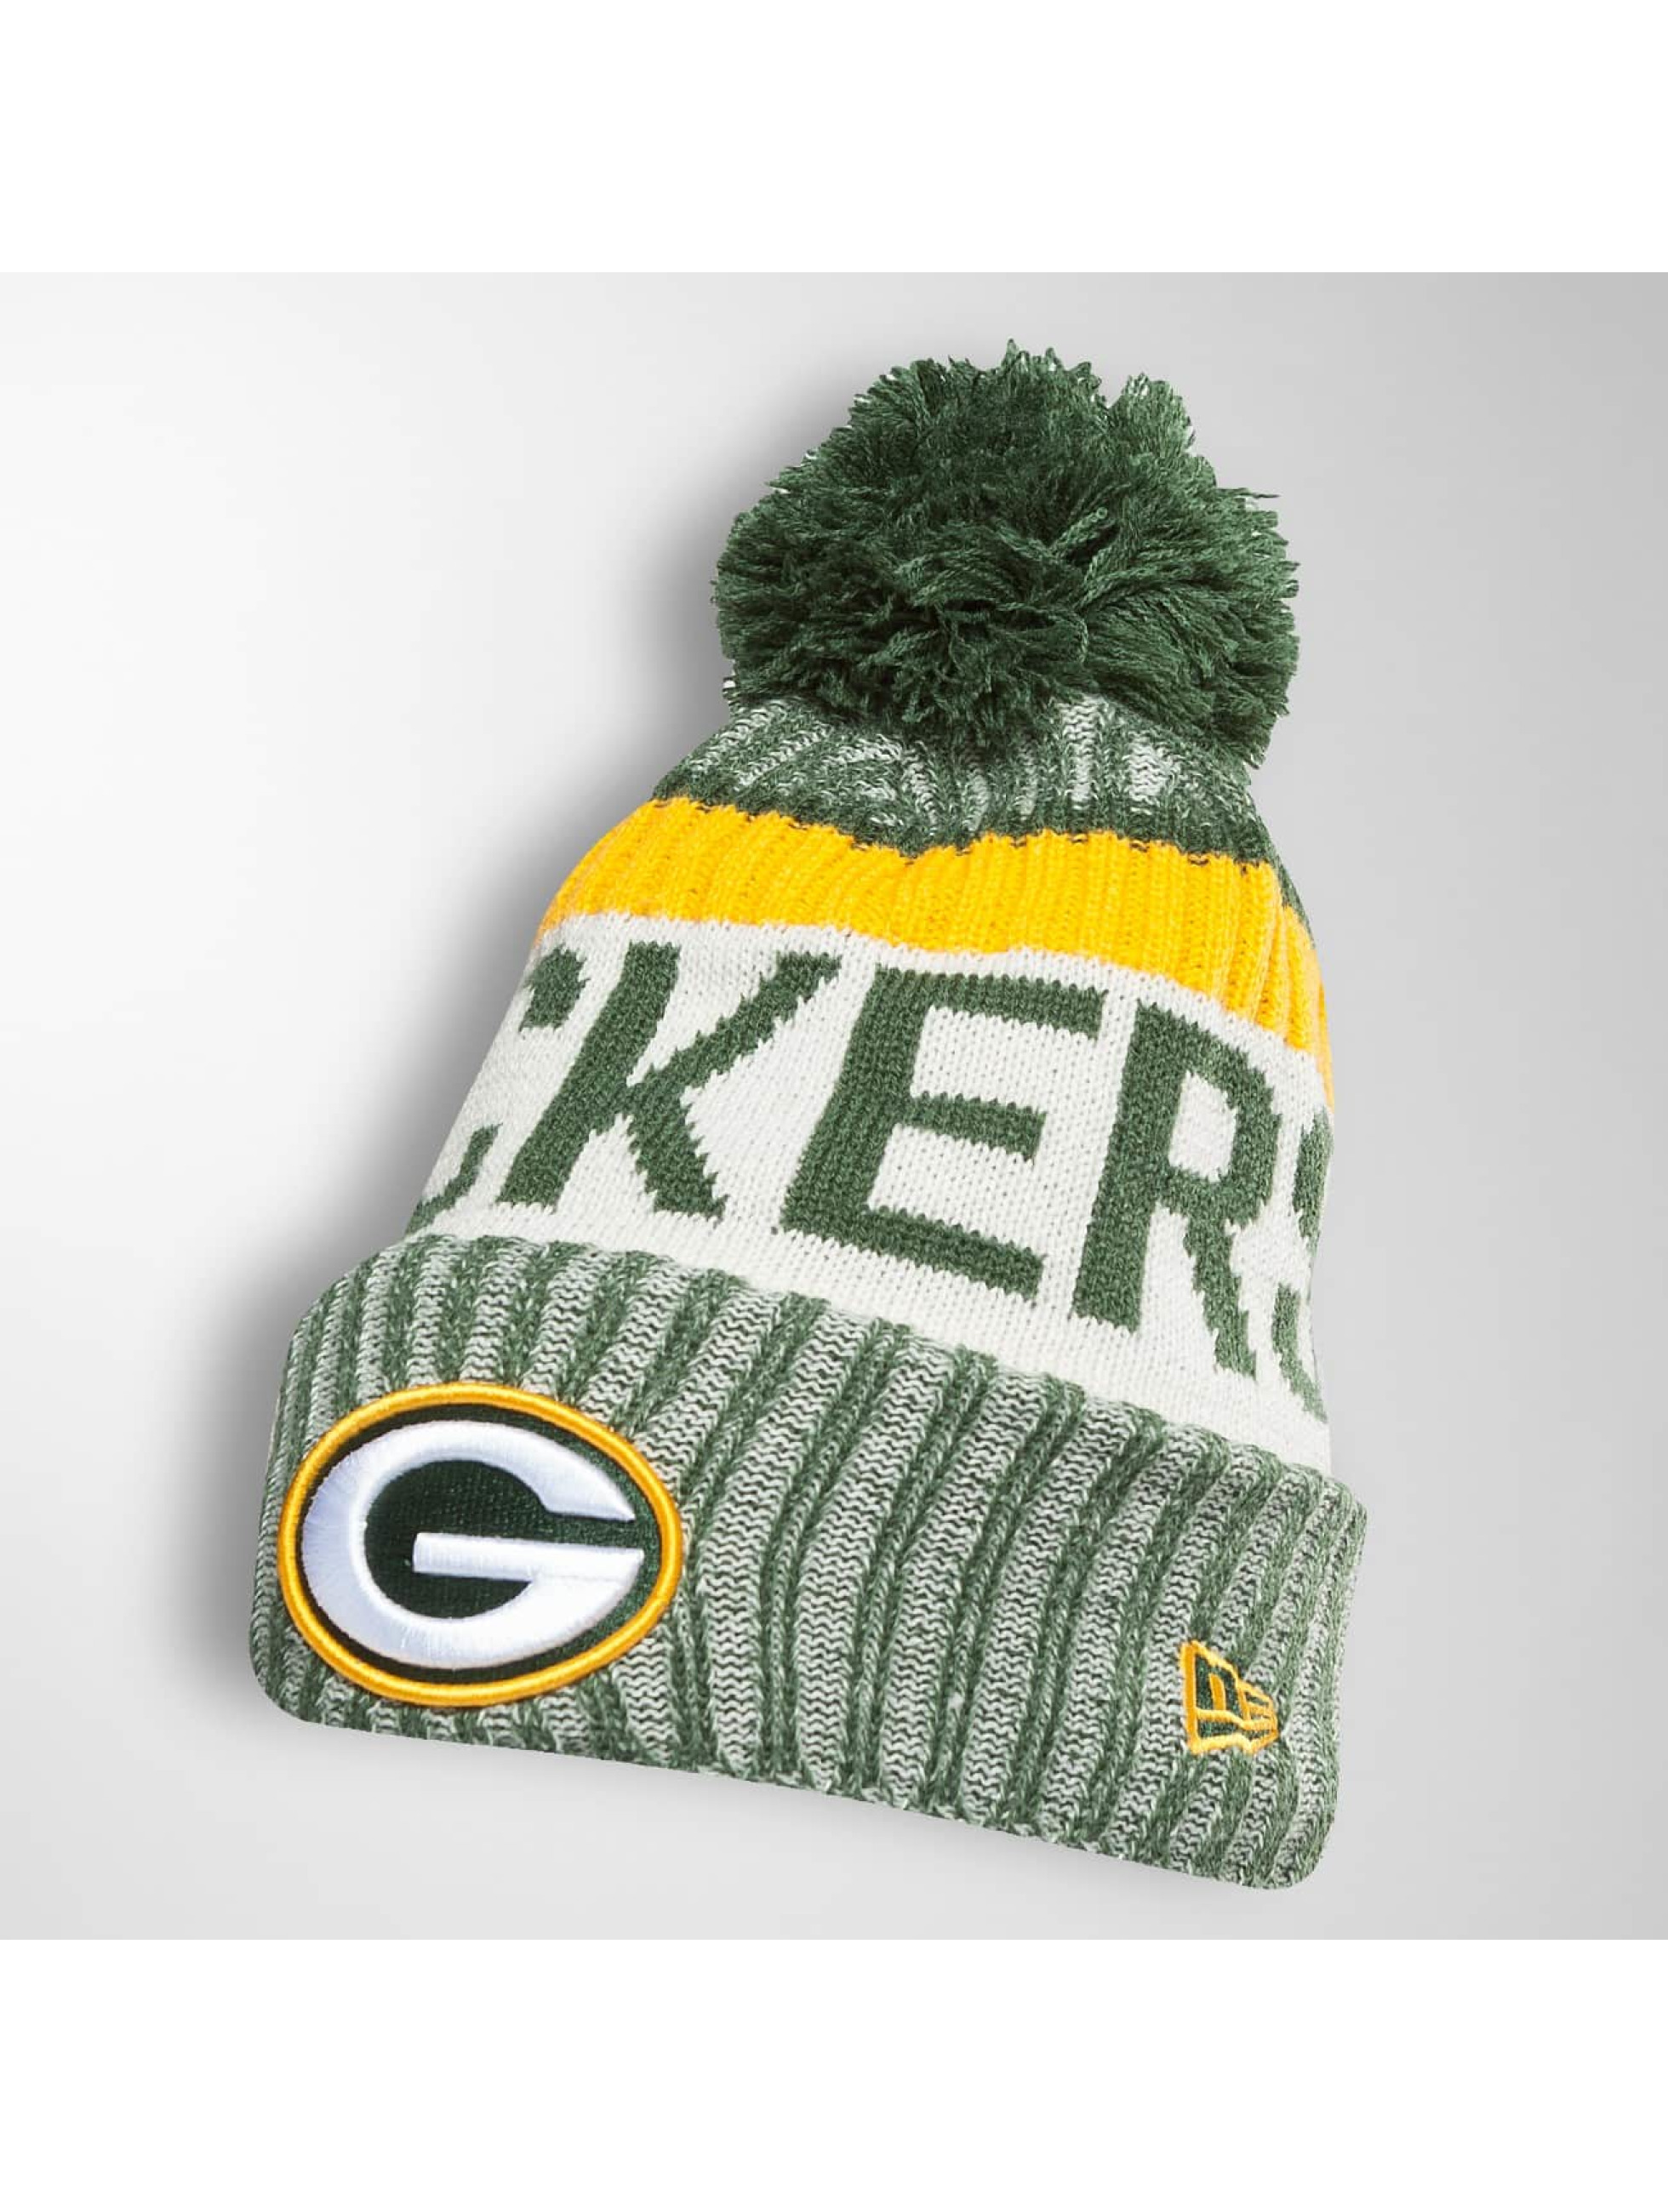 New Era Männer,Frauen Wintermütze On Fiel NFL Sport Green Bay Packers in grün